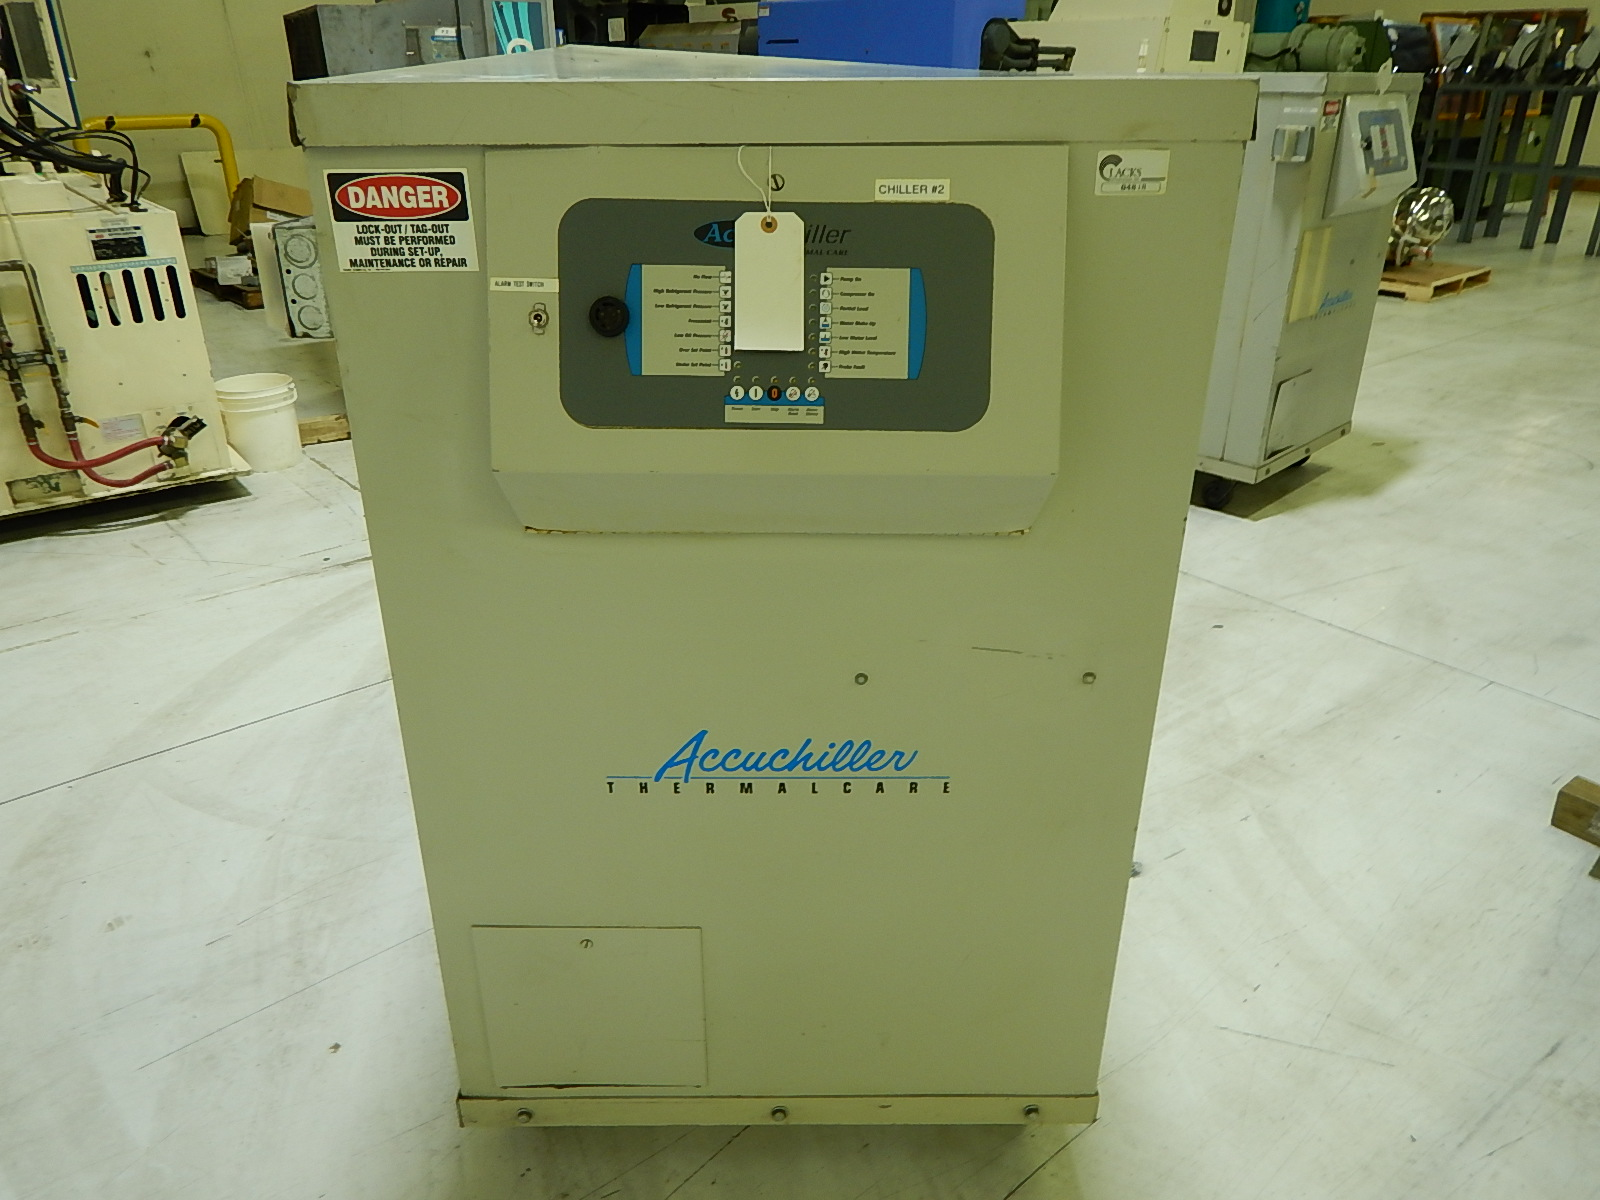 Thermal Care AQ1W1504 Used Water Cooled Chiller, 15 ton, 3hp pump, 460V